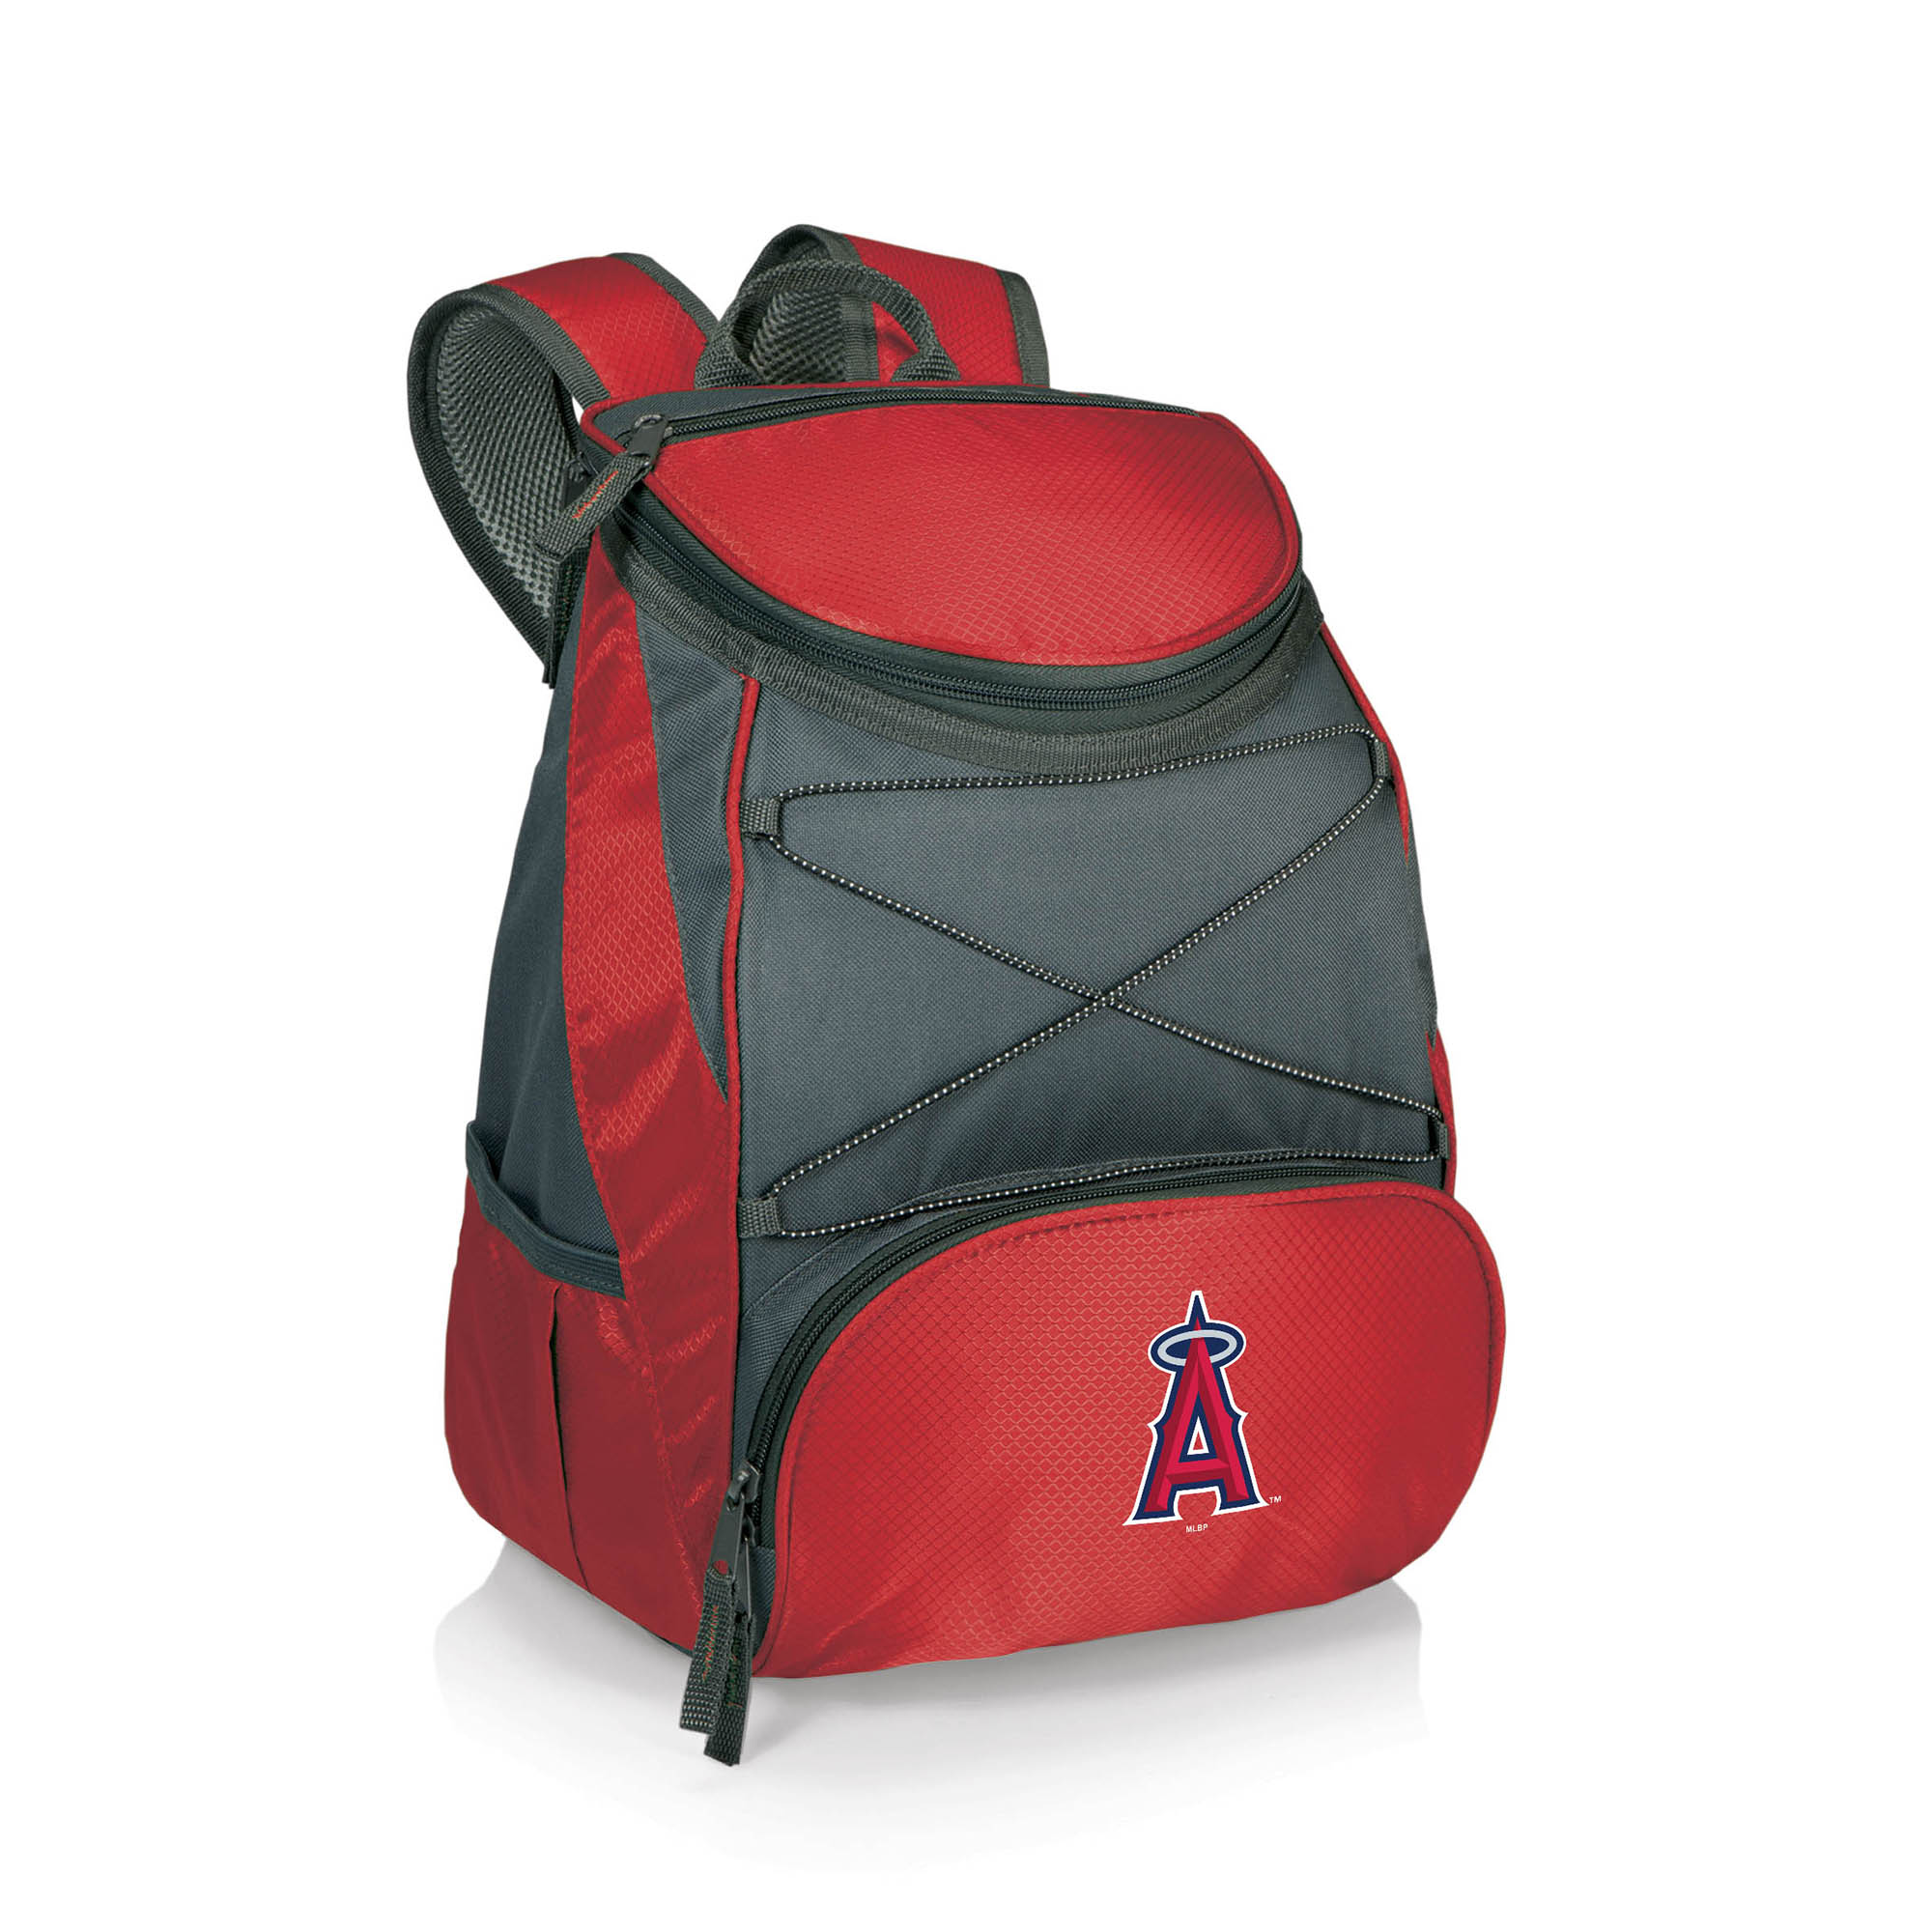 Los Angeles Angels PTX Backpack Cooler - Red - No Size